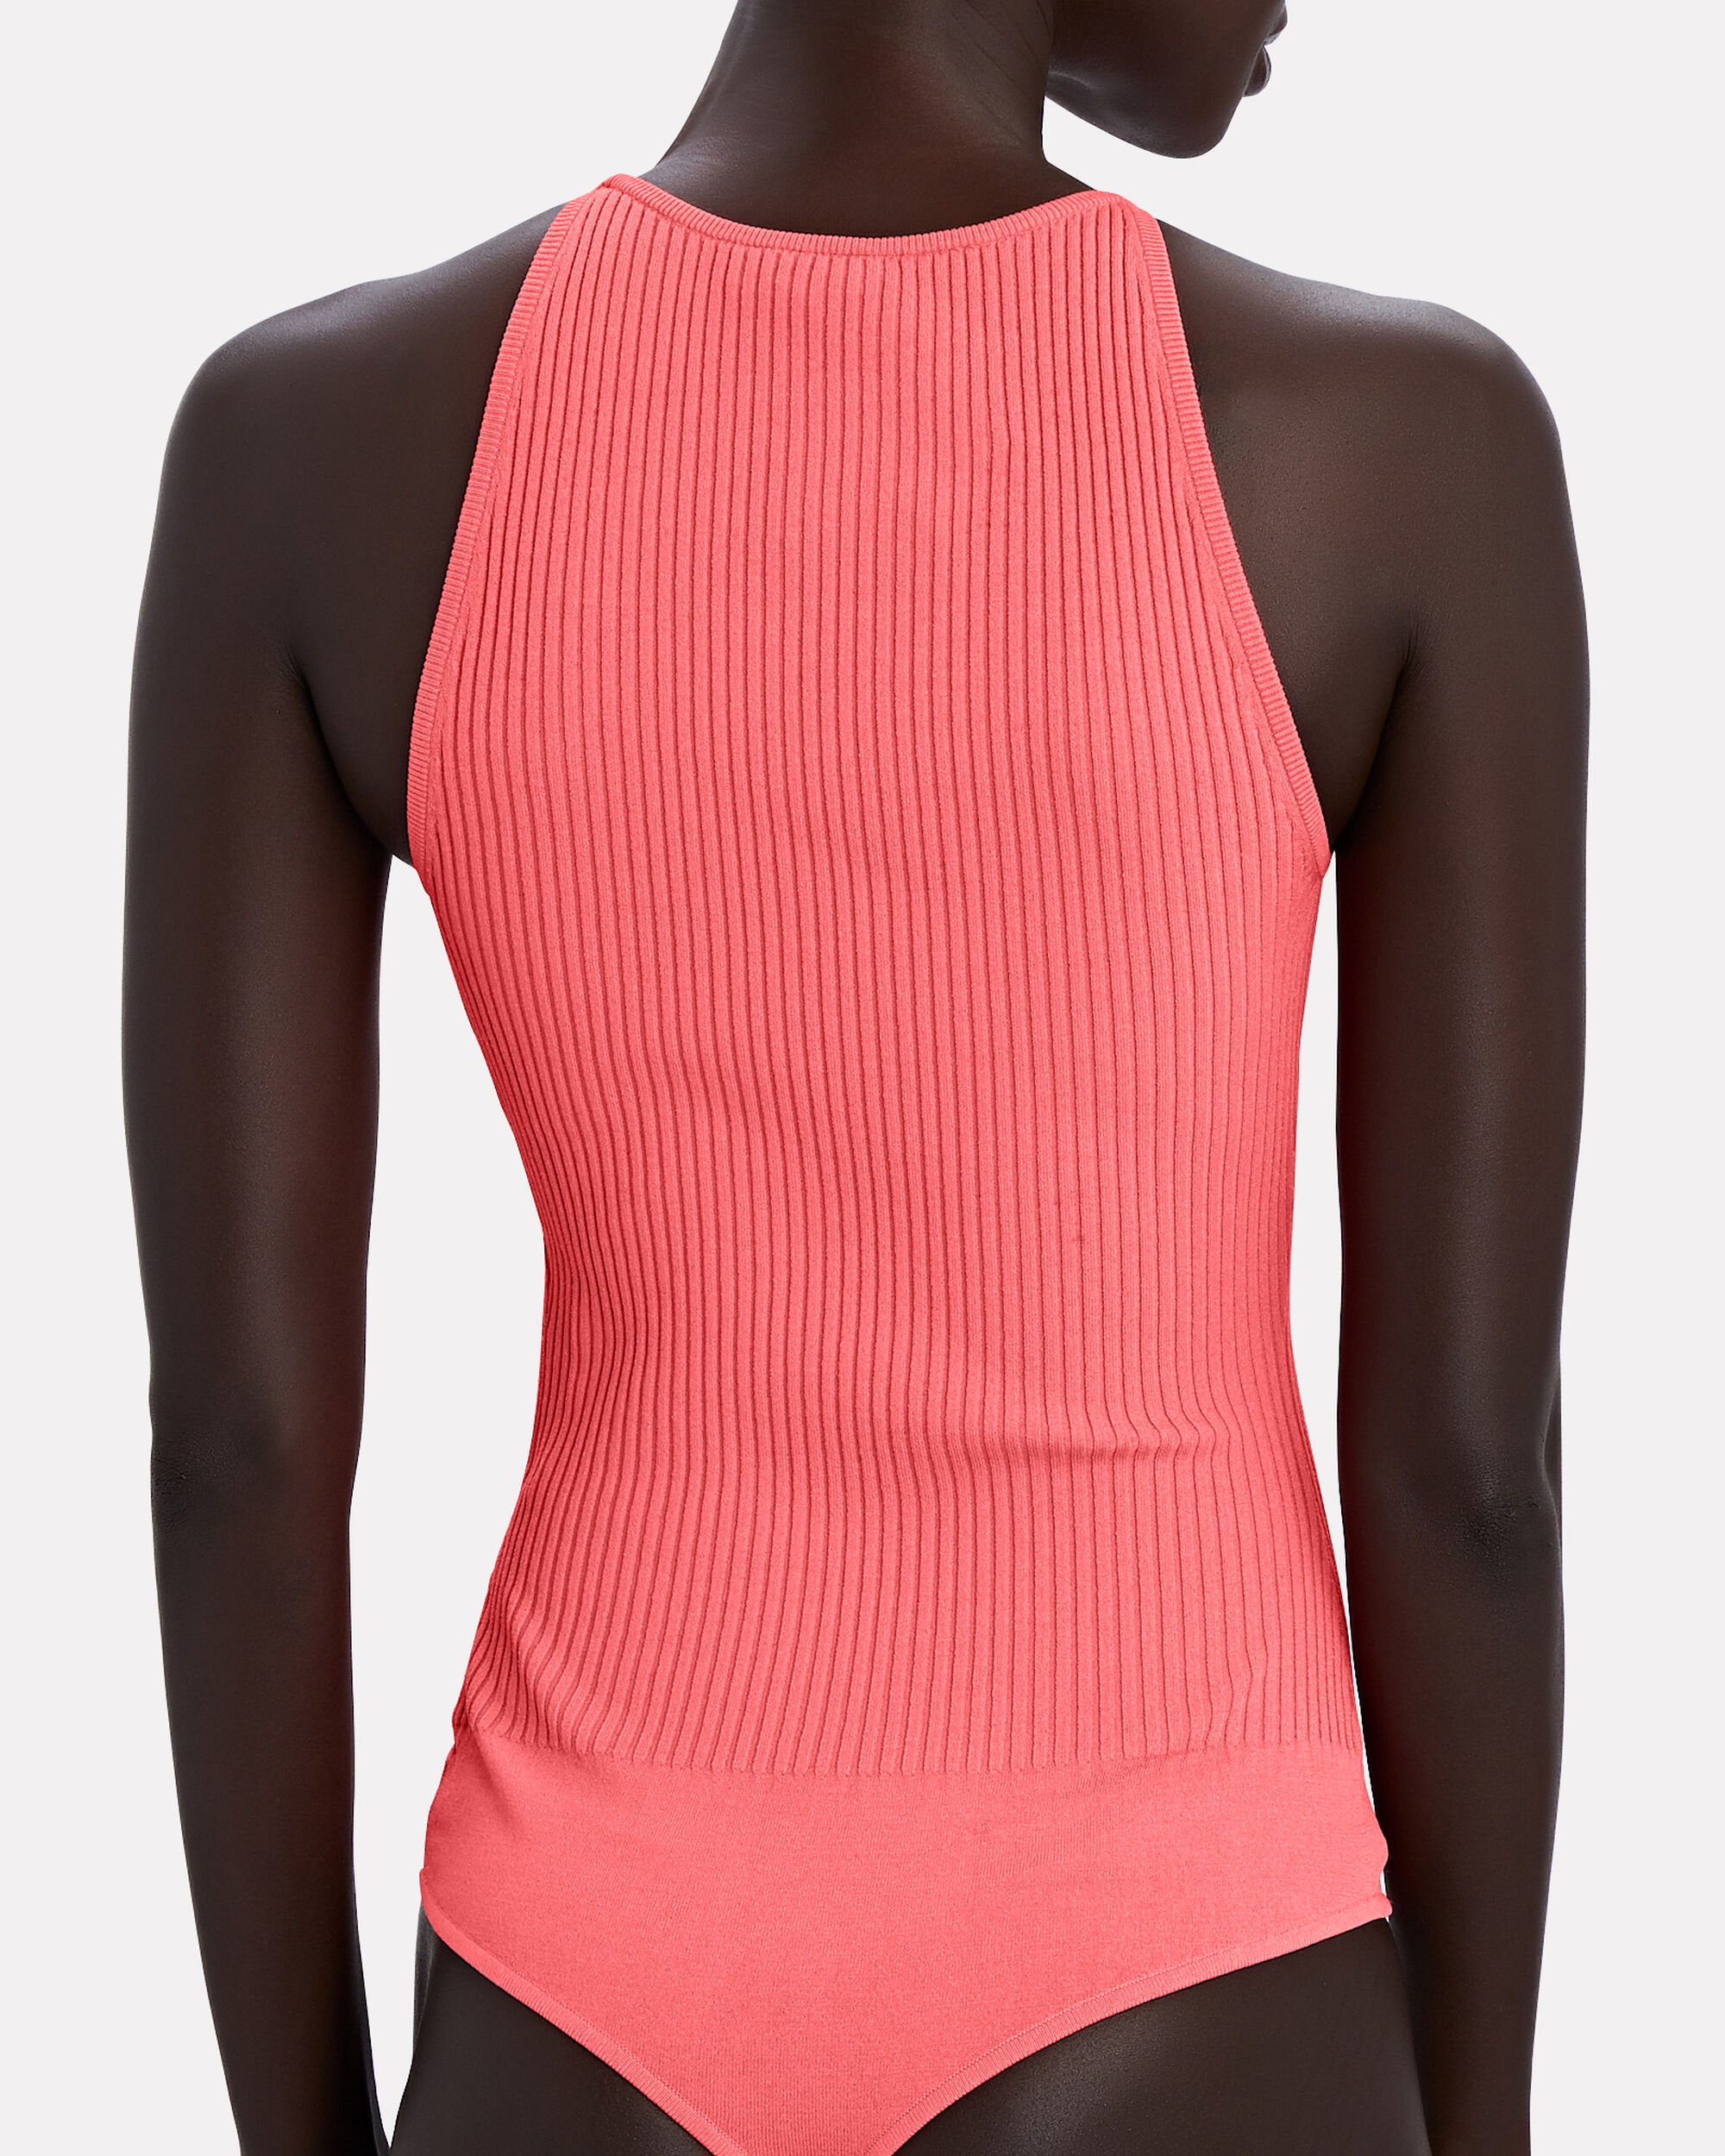 New Thea High Neck Lace /& Mesh Body in Pink SEU1